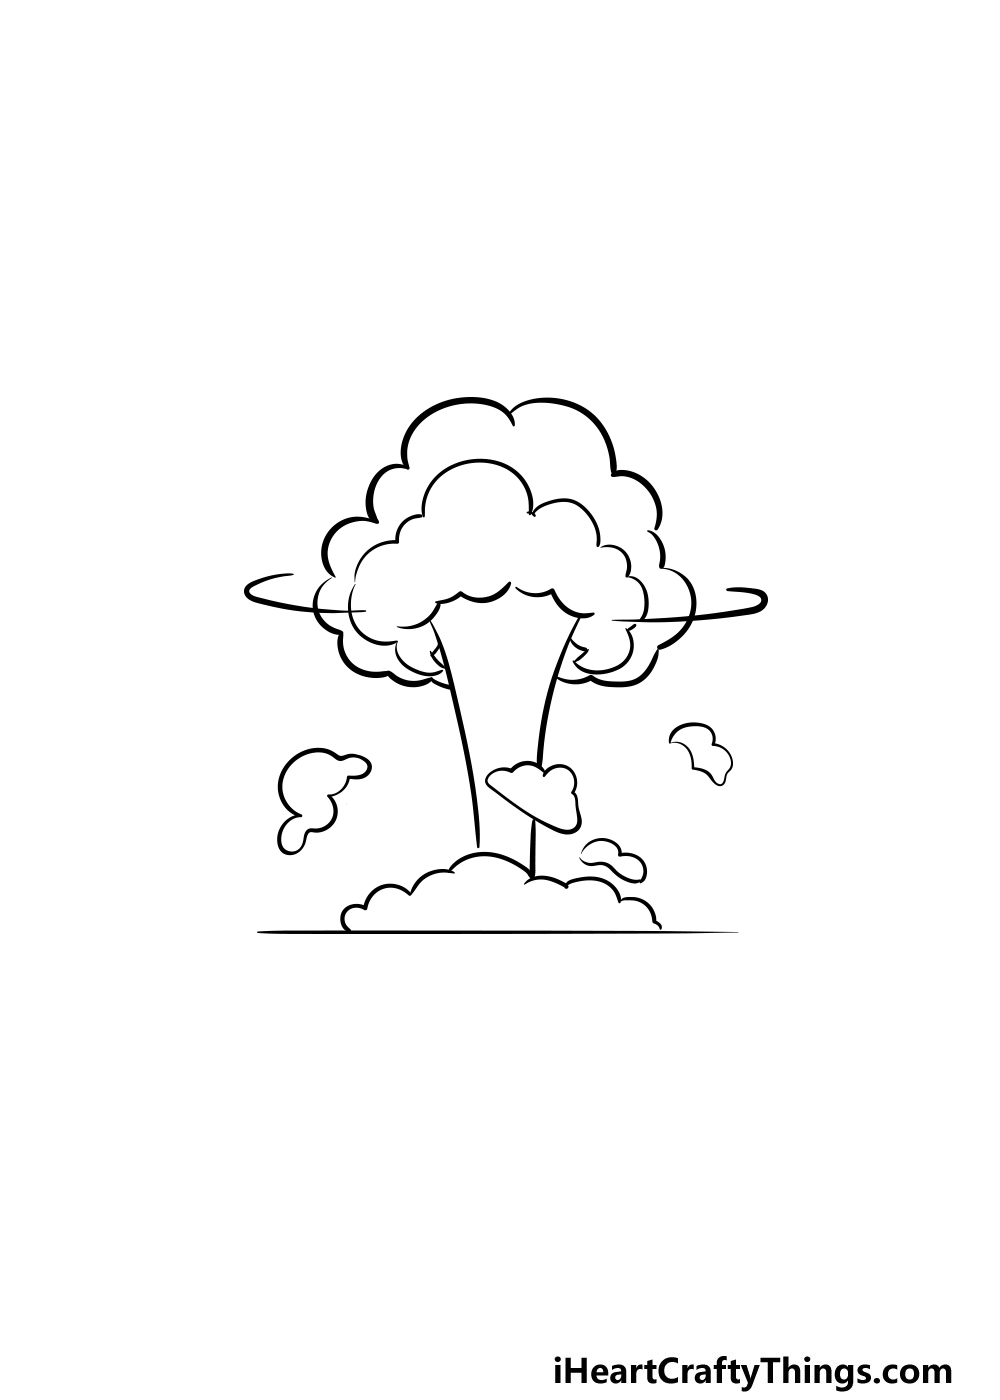 drawing an explosion step 5